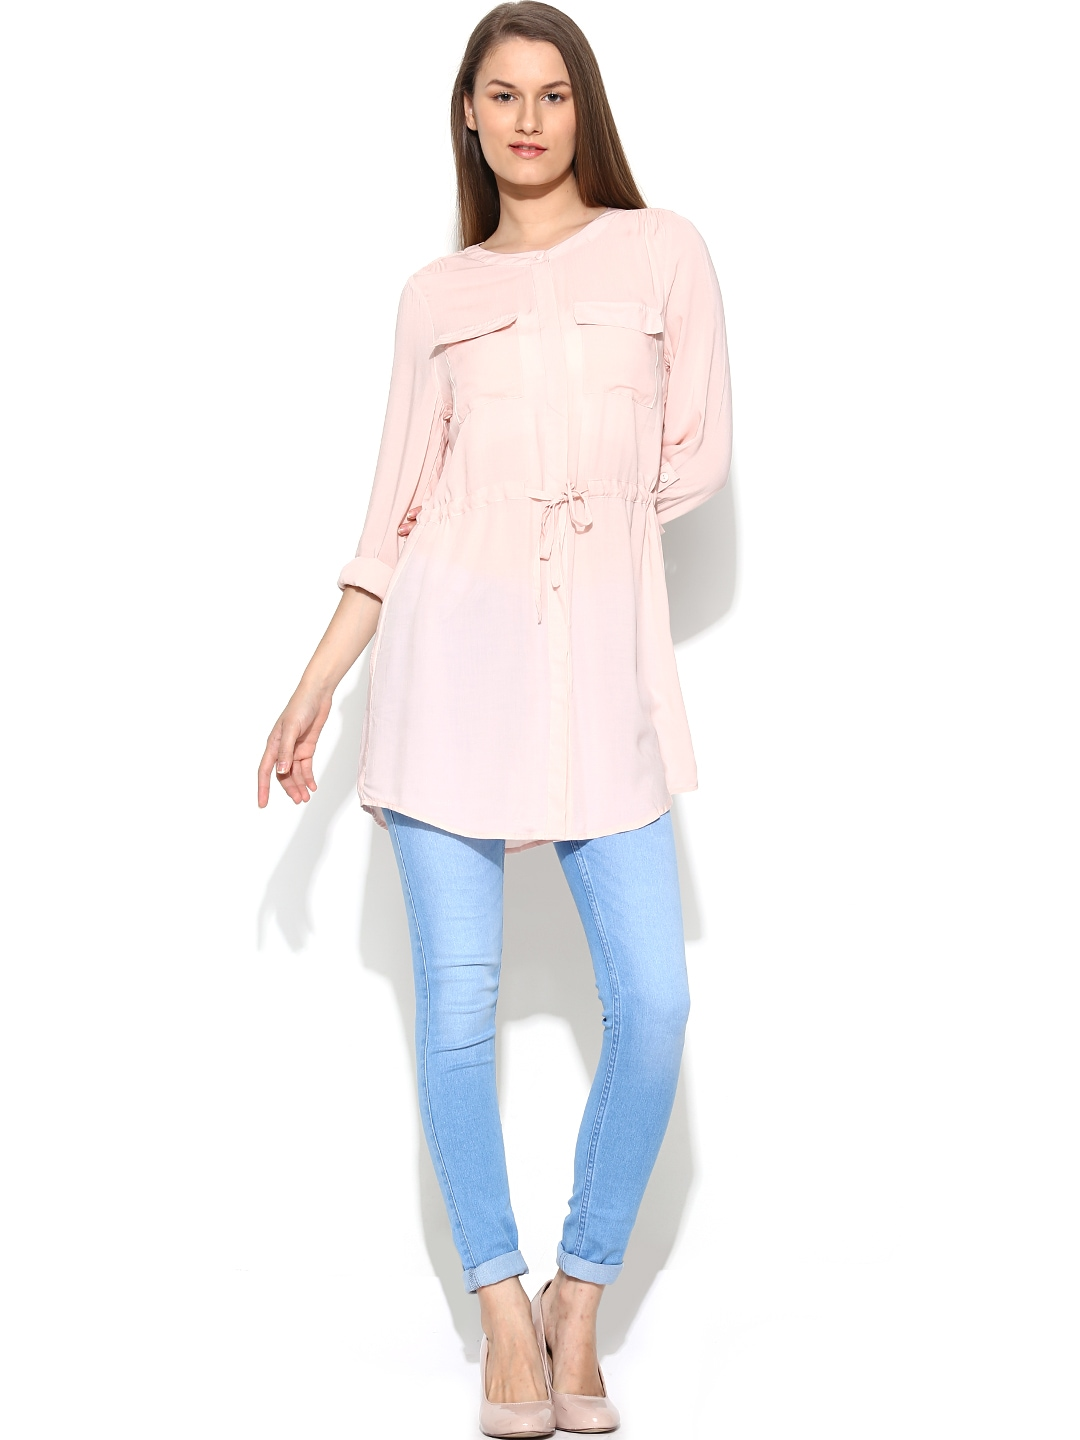 Find Pink women's tunics at ShopStyle. Shop the latest collection of Pink women's tunics from the most popular stores - all in one place.